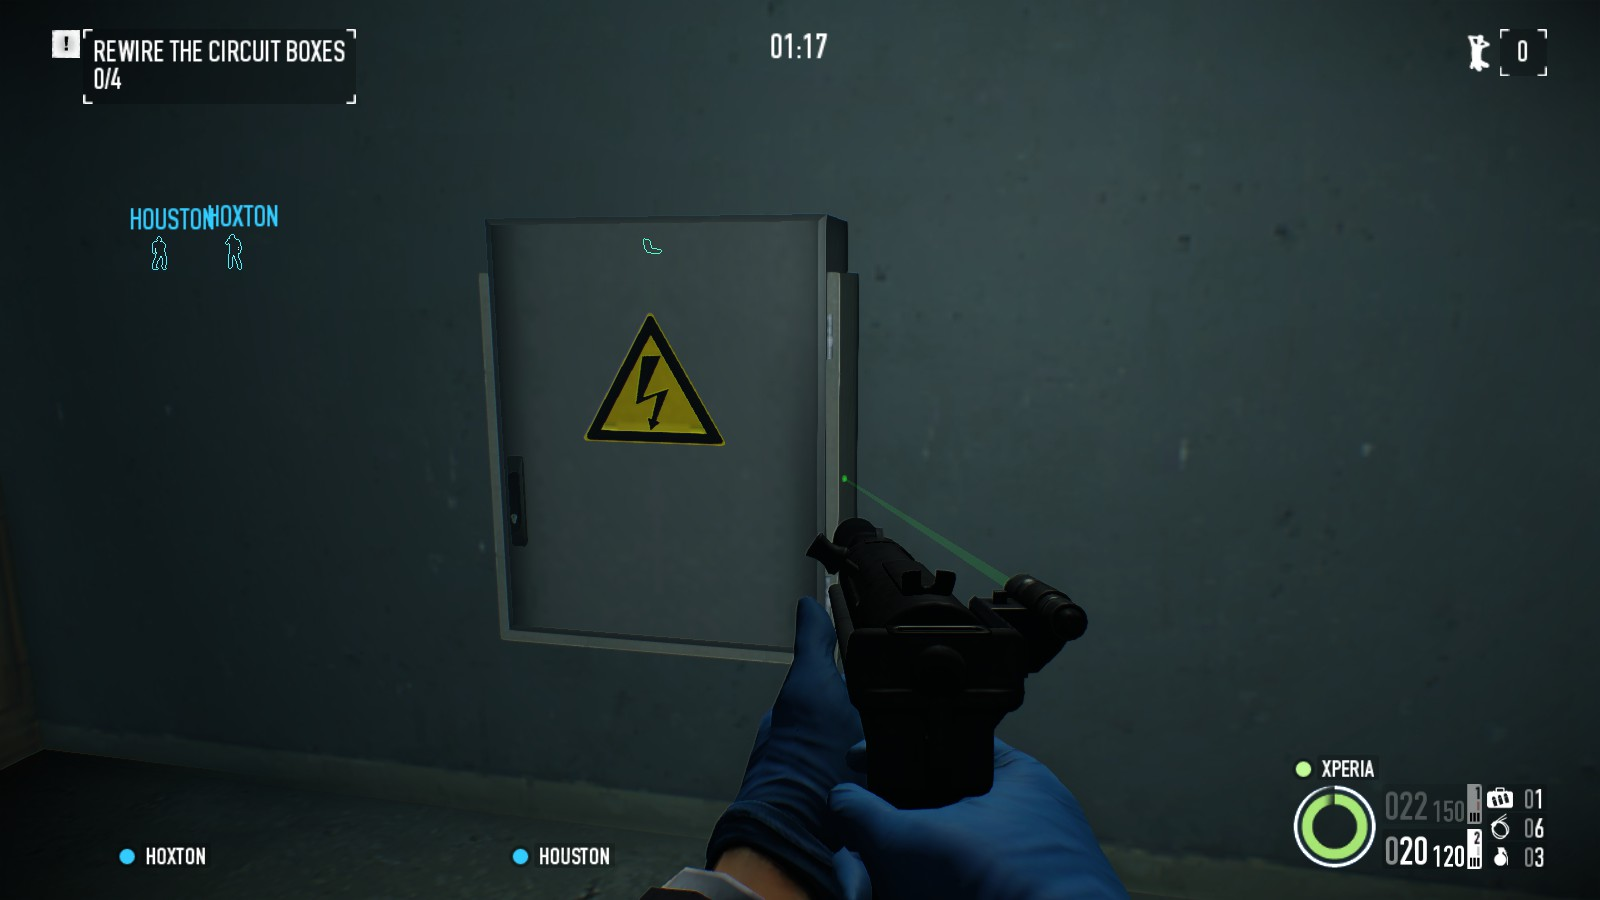 Steam Community Guide The Diamond Dlc Stealth Basement Wiring Circuits Re Wire 4 Circuit Boxes Scattered Around Area You Can Look Thru For 1 Or 2 But Mostly They Are All Spawn On Higher Floors